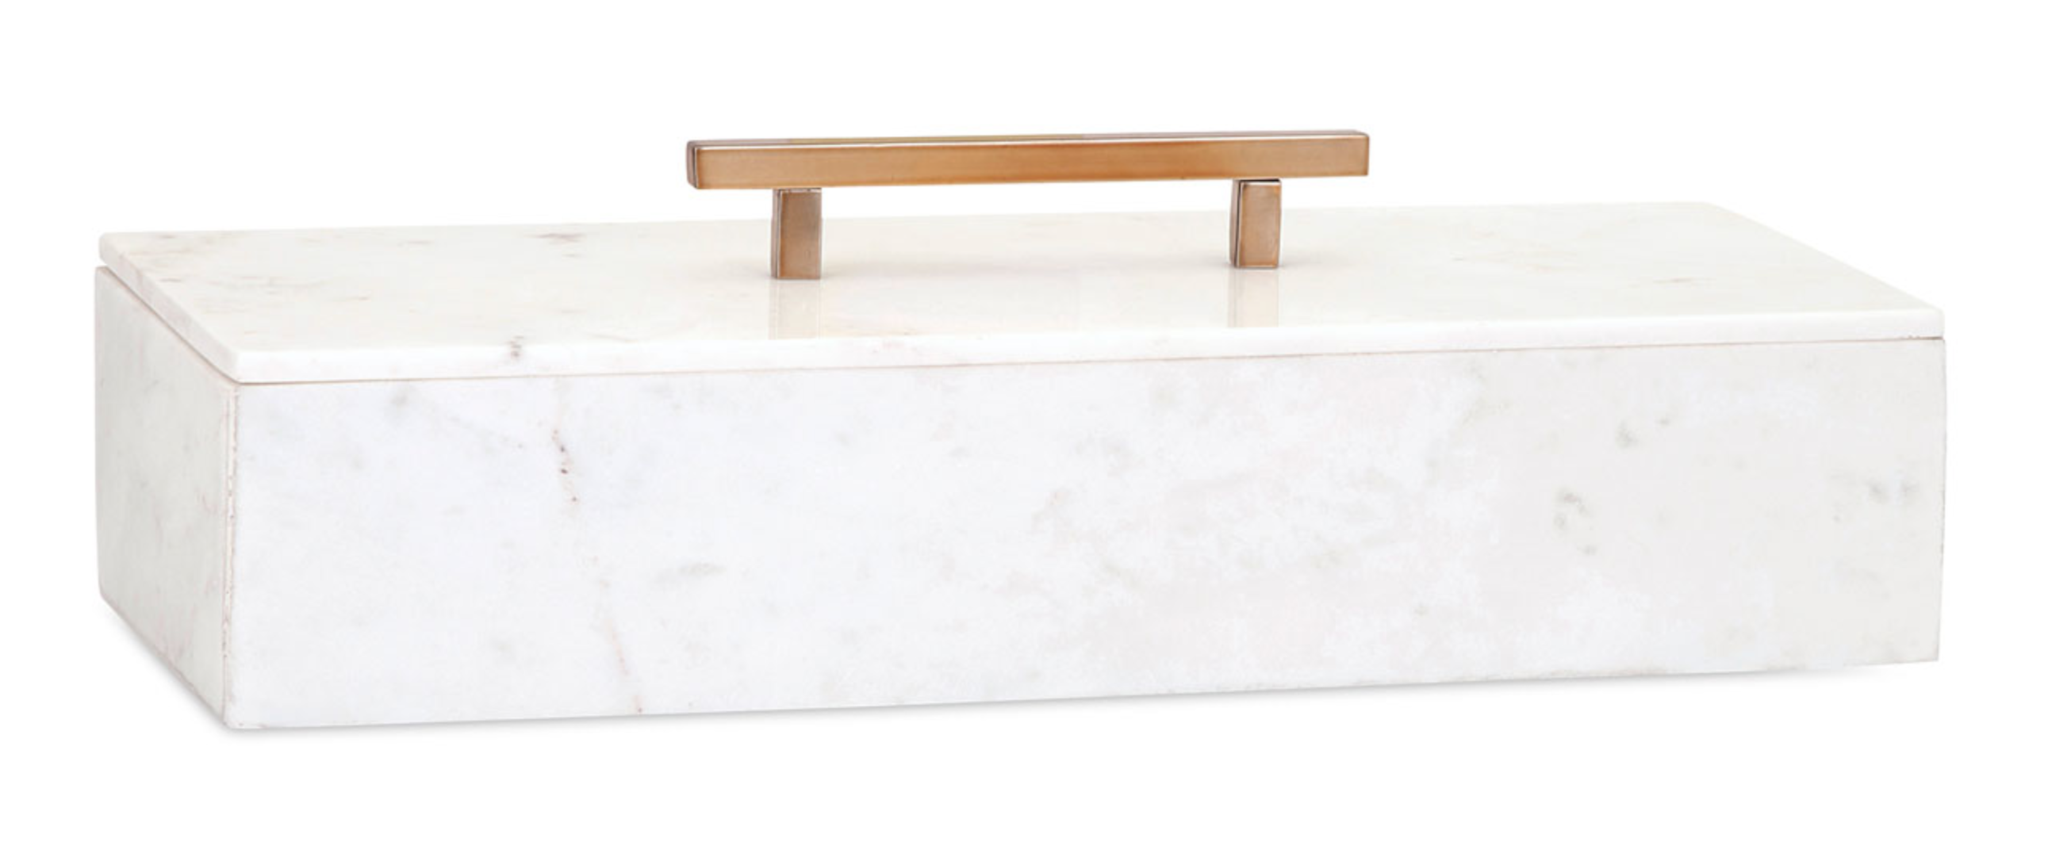 "Rockstar White Marble Box with Metal Handle 15"" Wide"